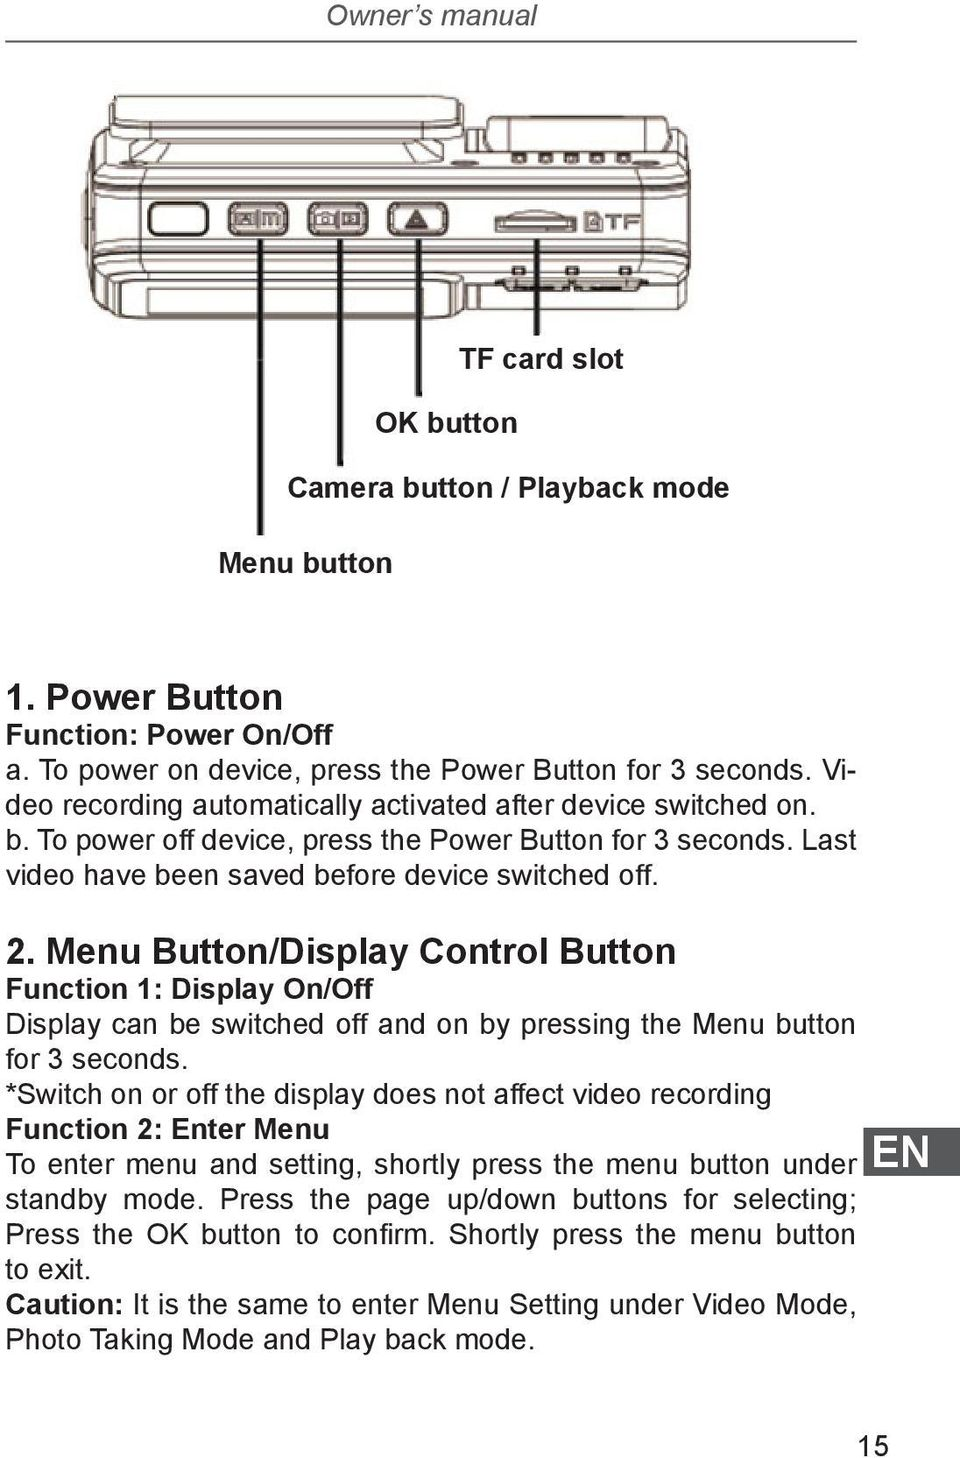 Menu Button/Display Control Button Function 1: Display On/Off Display can be switched off and on by pressing the Menu button for 3 seconds.